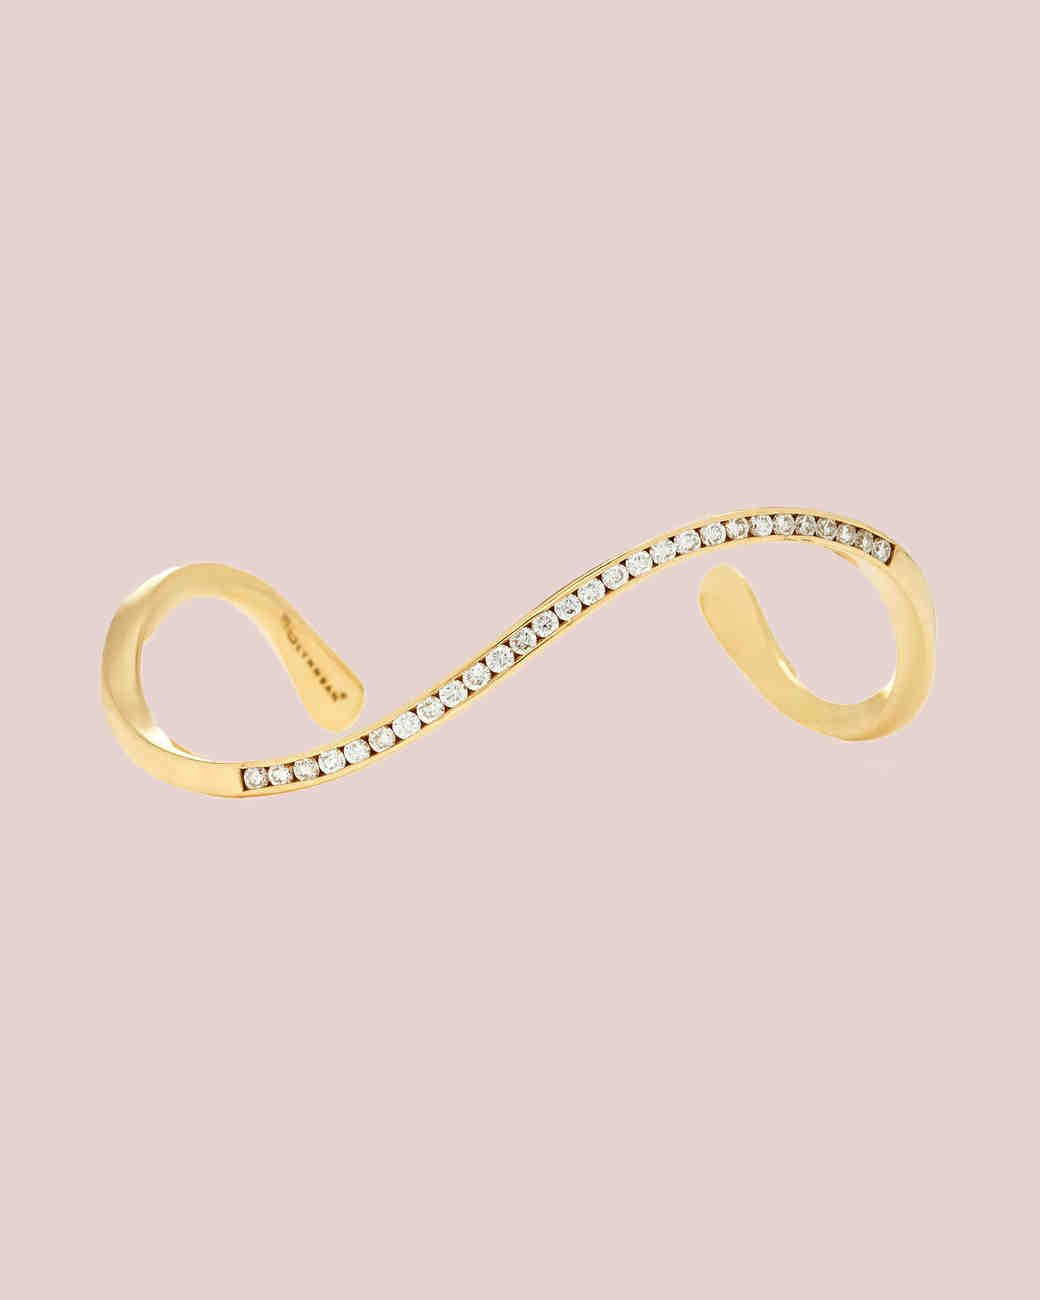 Lynn Ban Jewelry 14-karat Gold Diamond Bangle